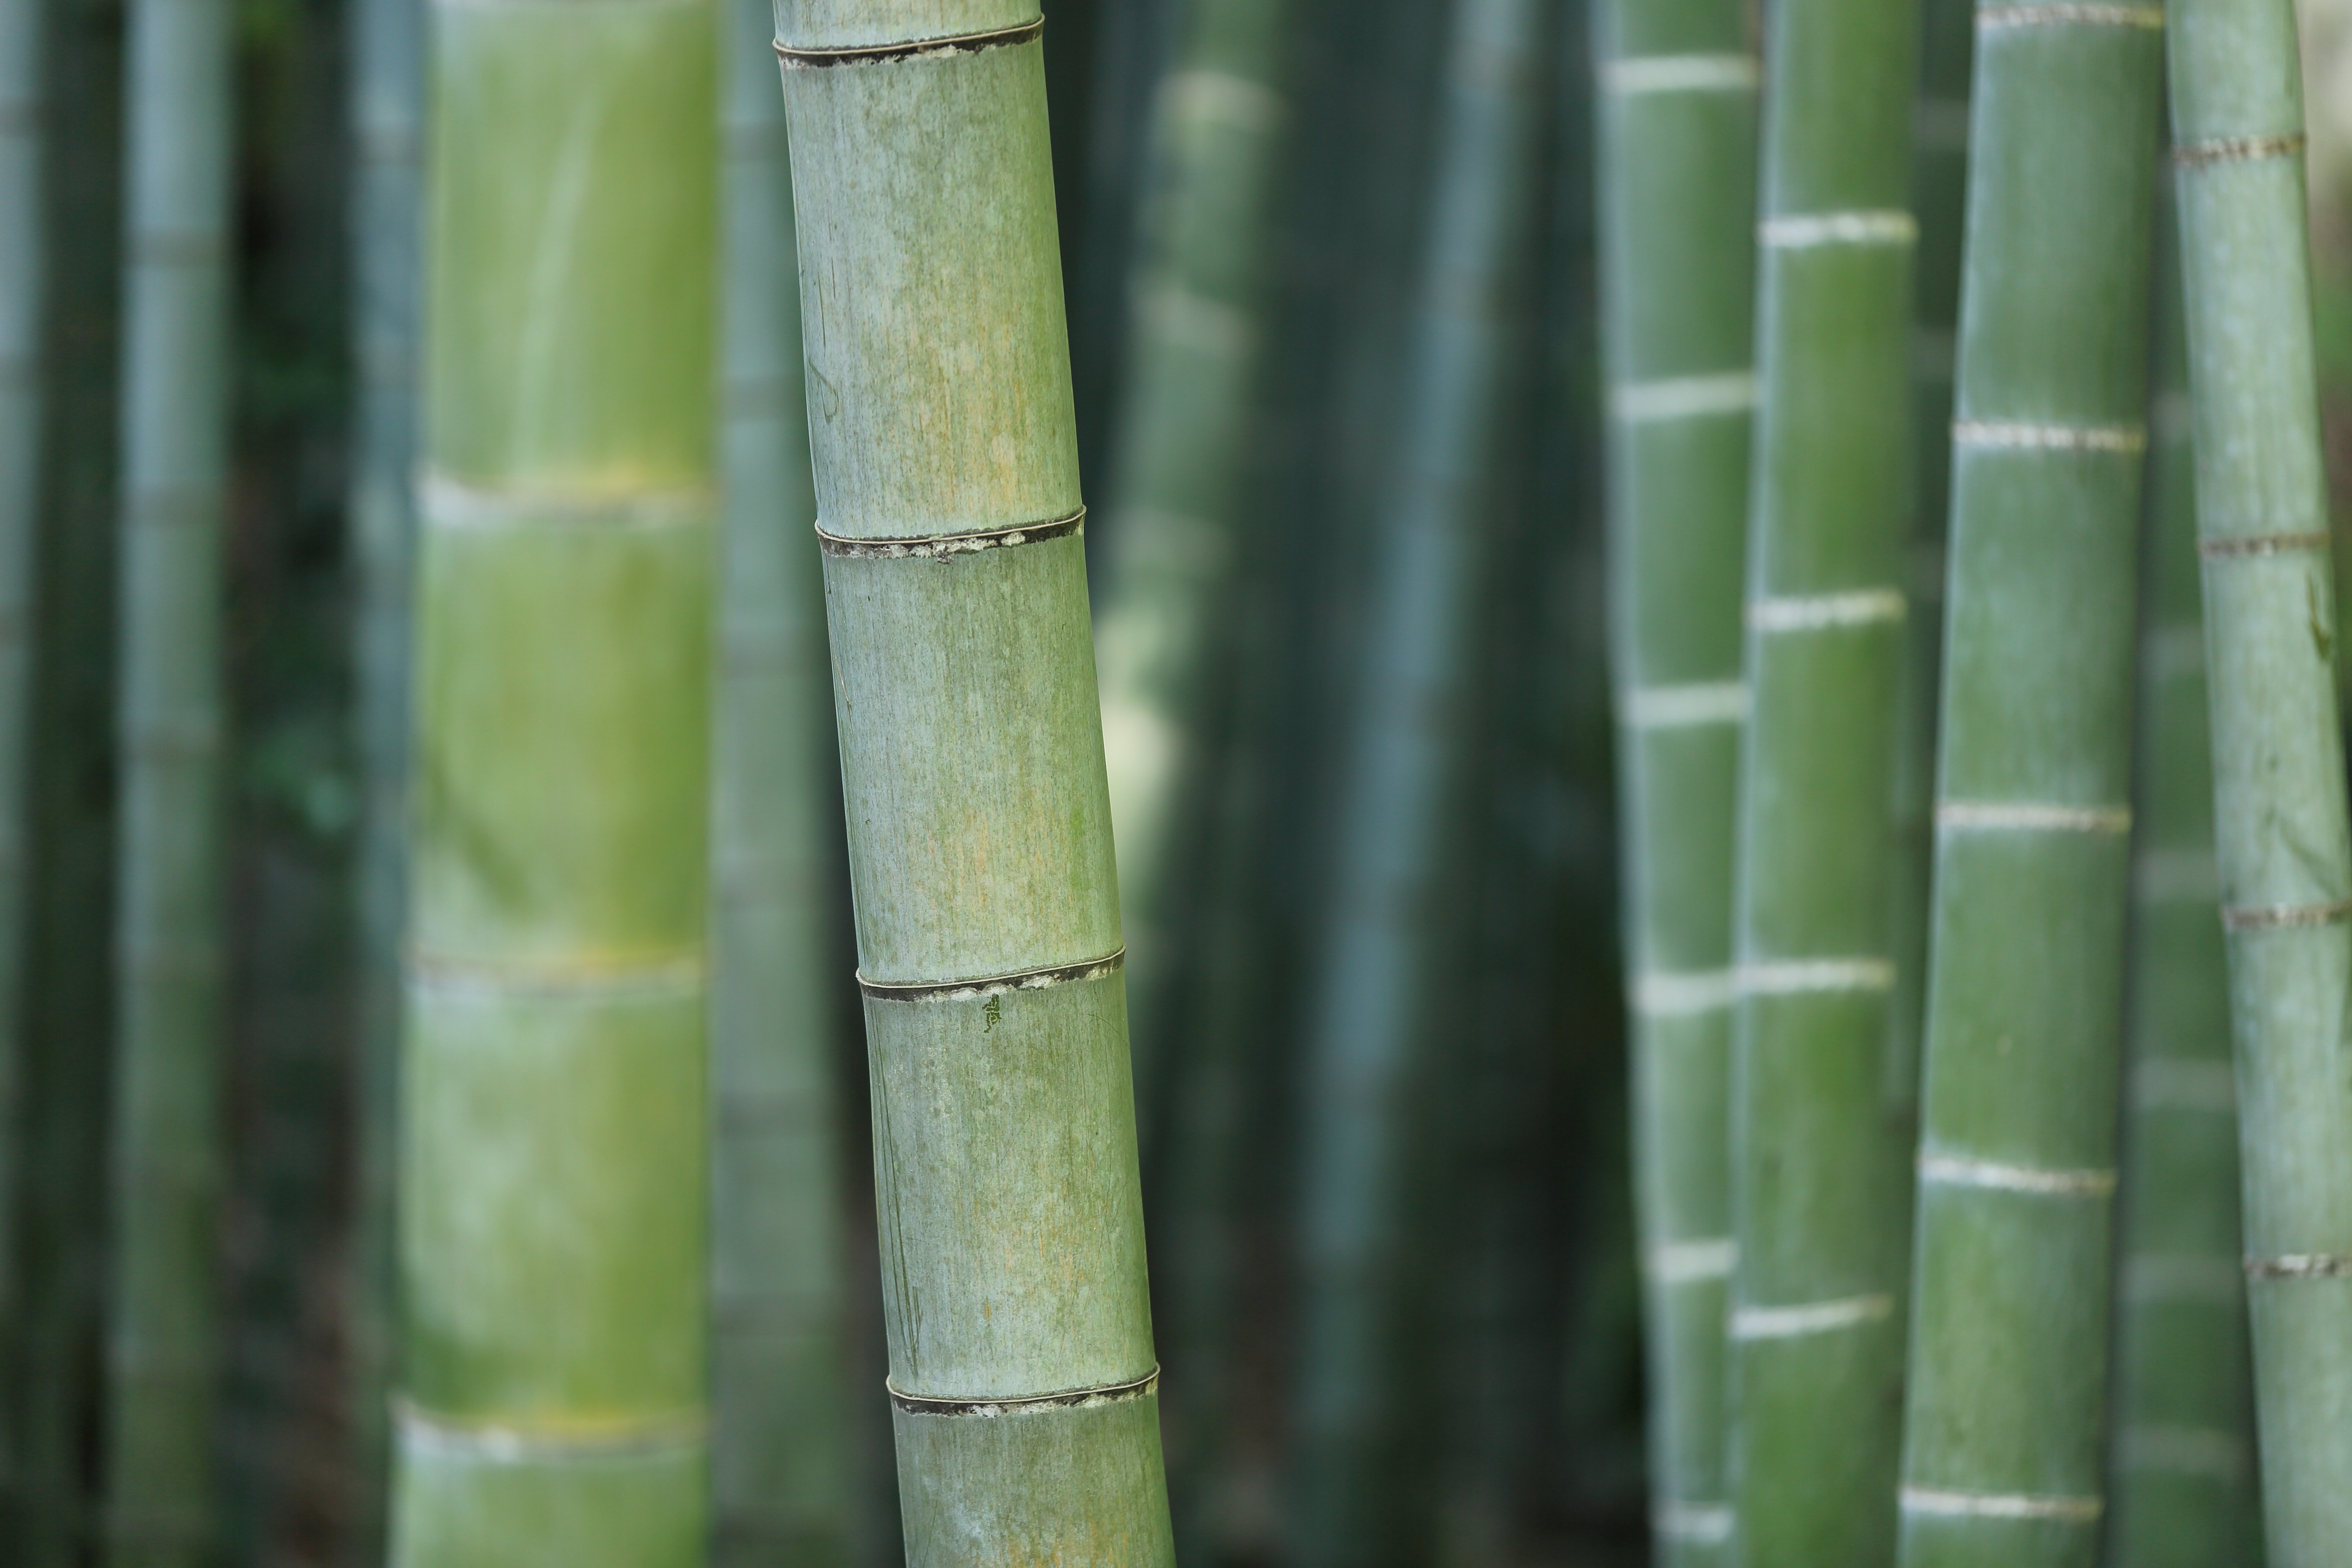 Macro of green bamboo plant shoots and stems growing